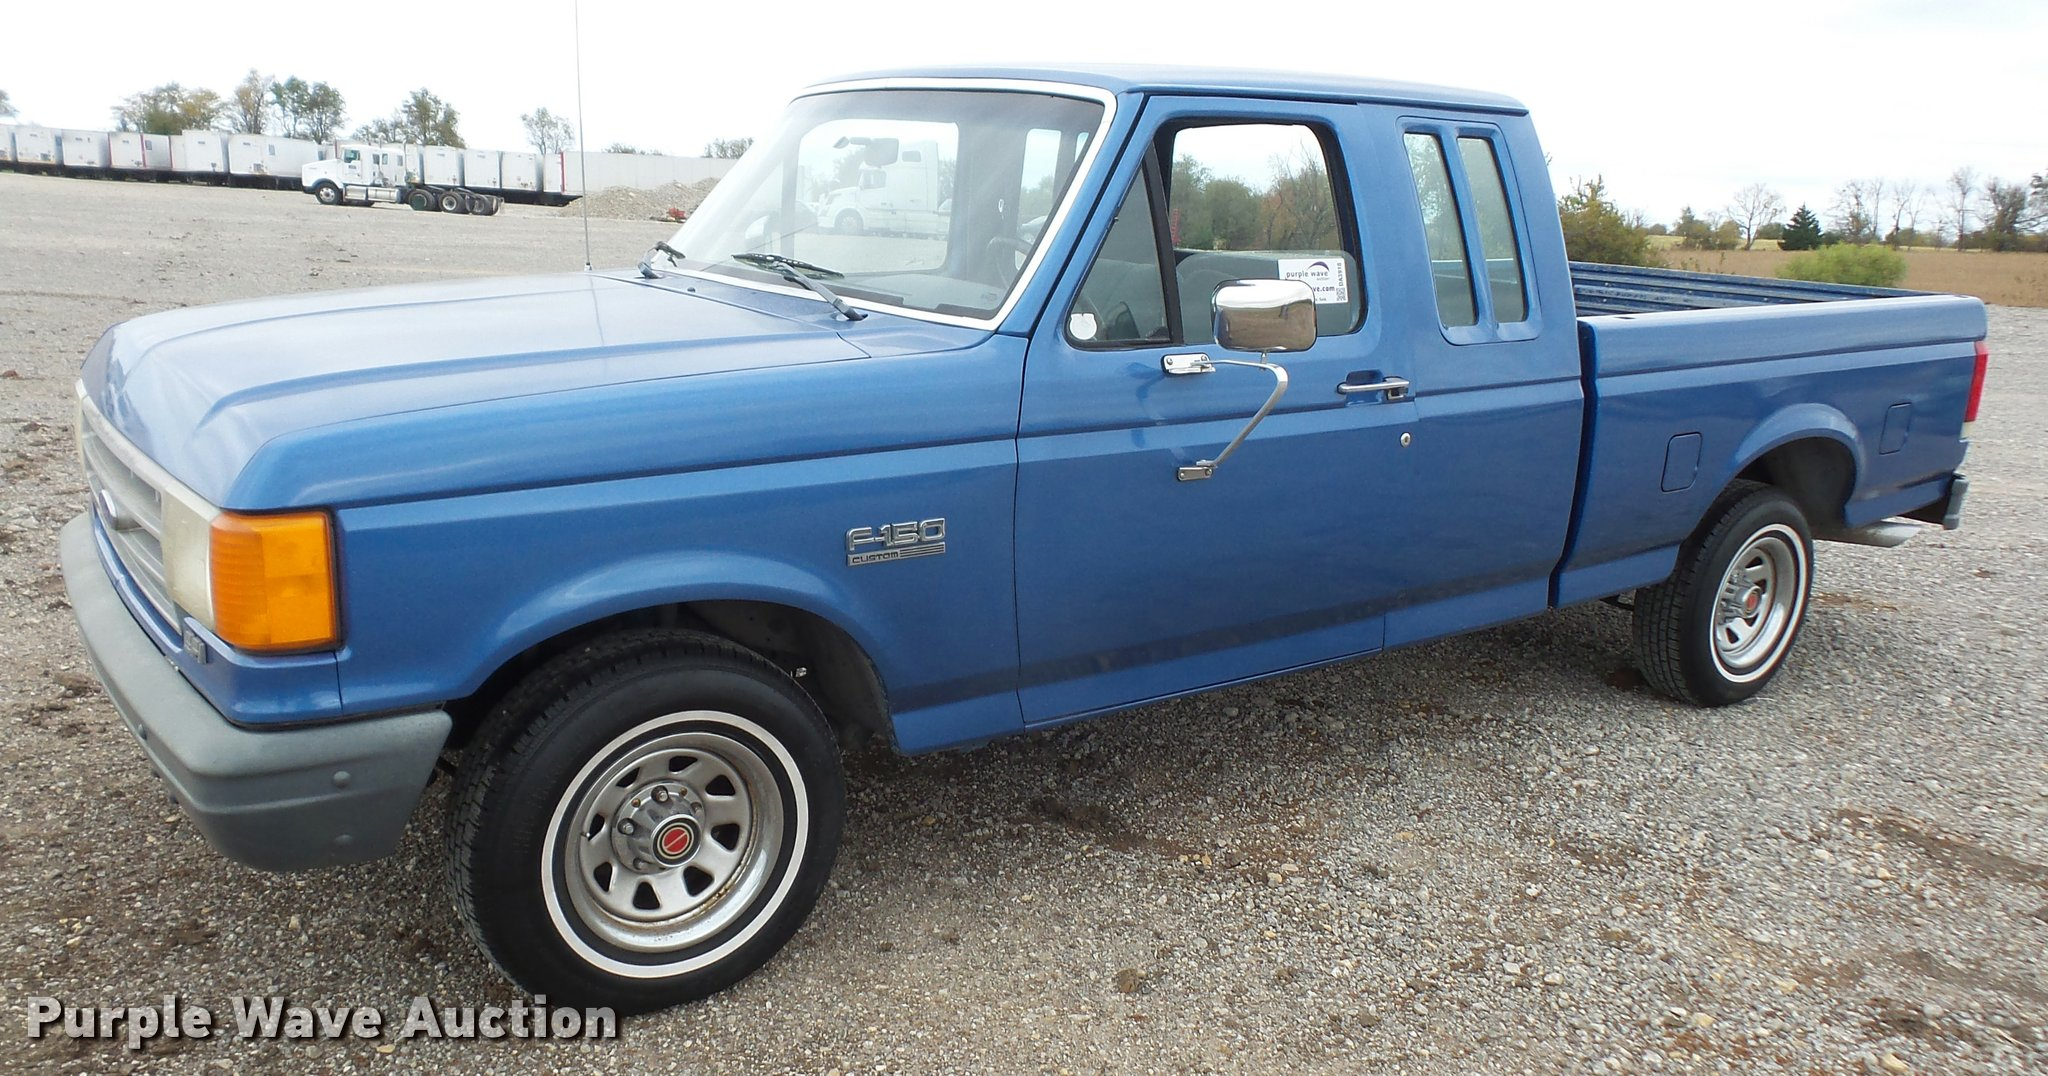 Da3918 image for item da3918 1989 ford f150